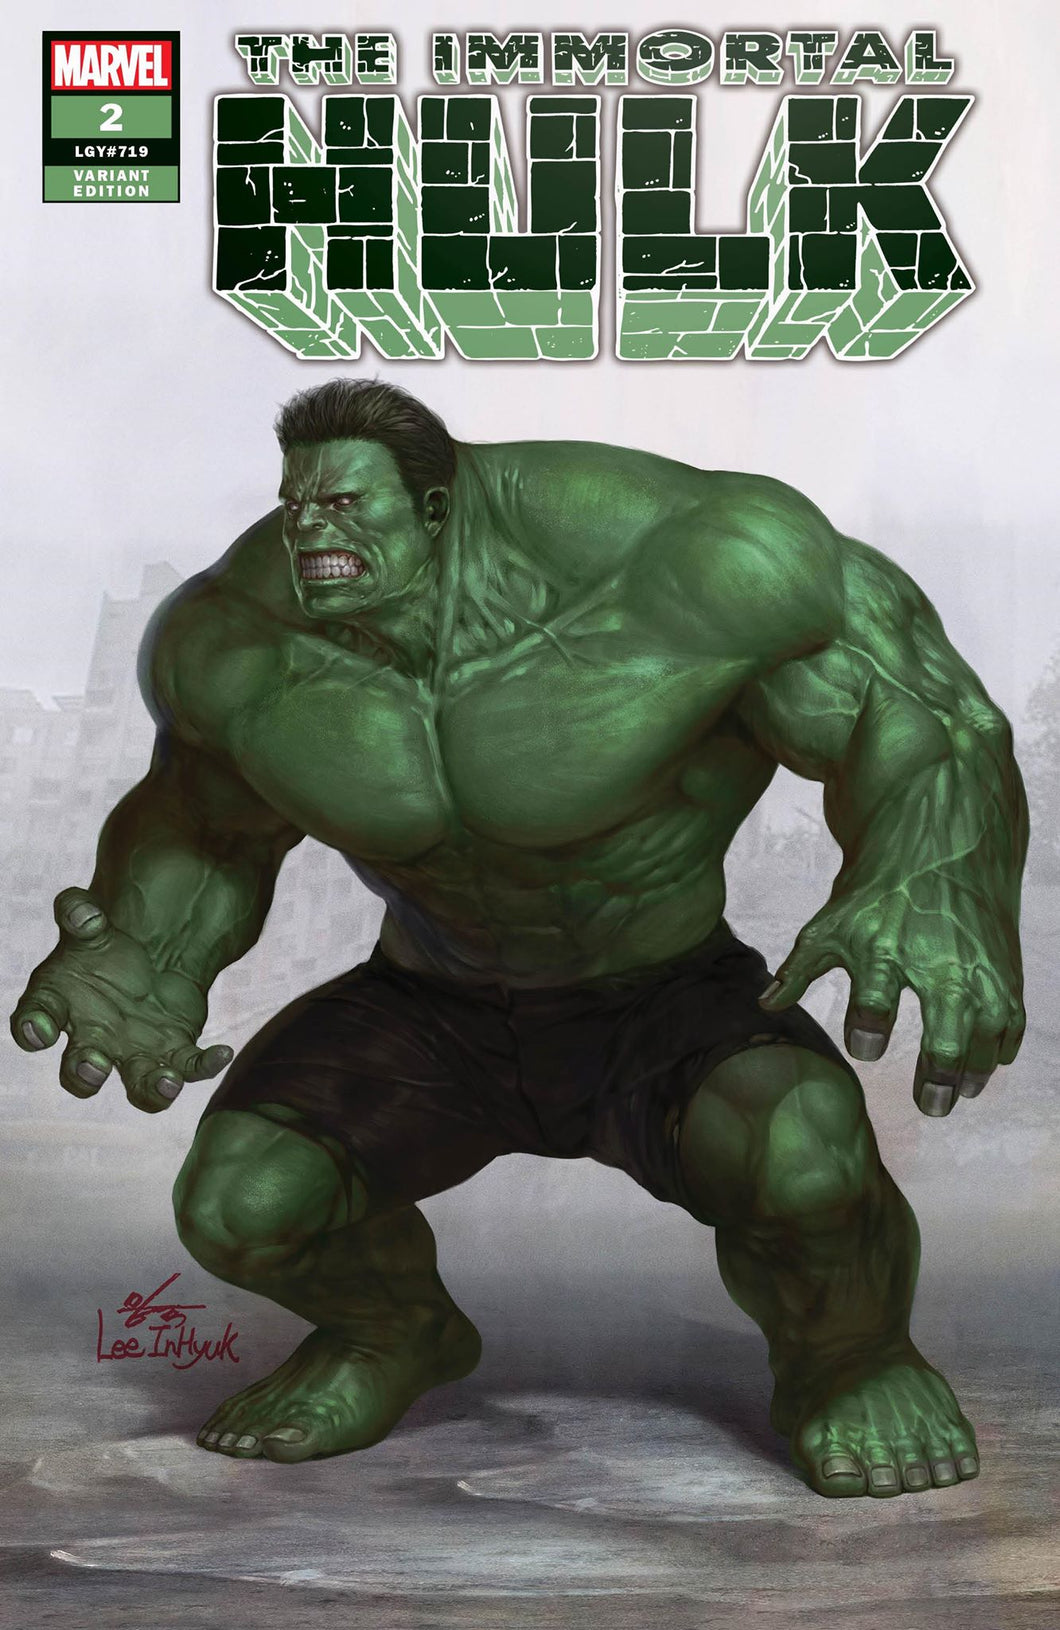 Immortal Hulk #2 InHyuk Lee 5th Print - Limited to 800 w/COA